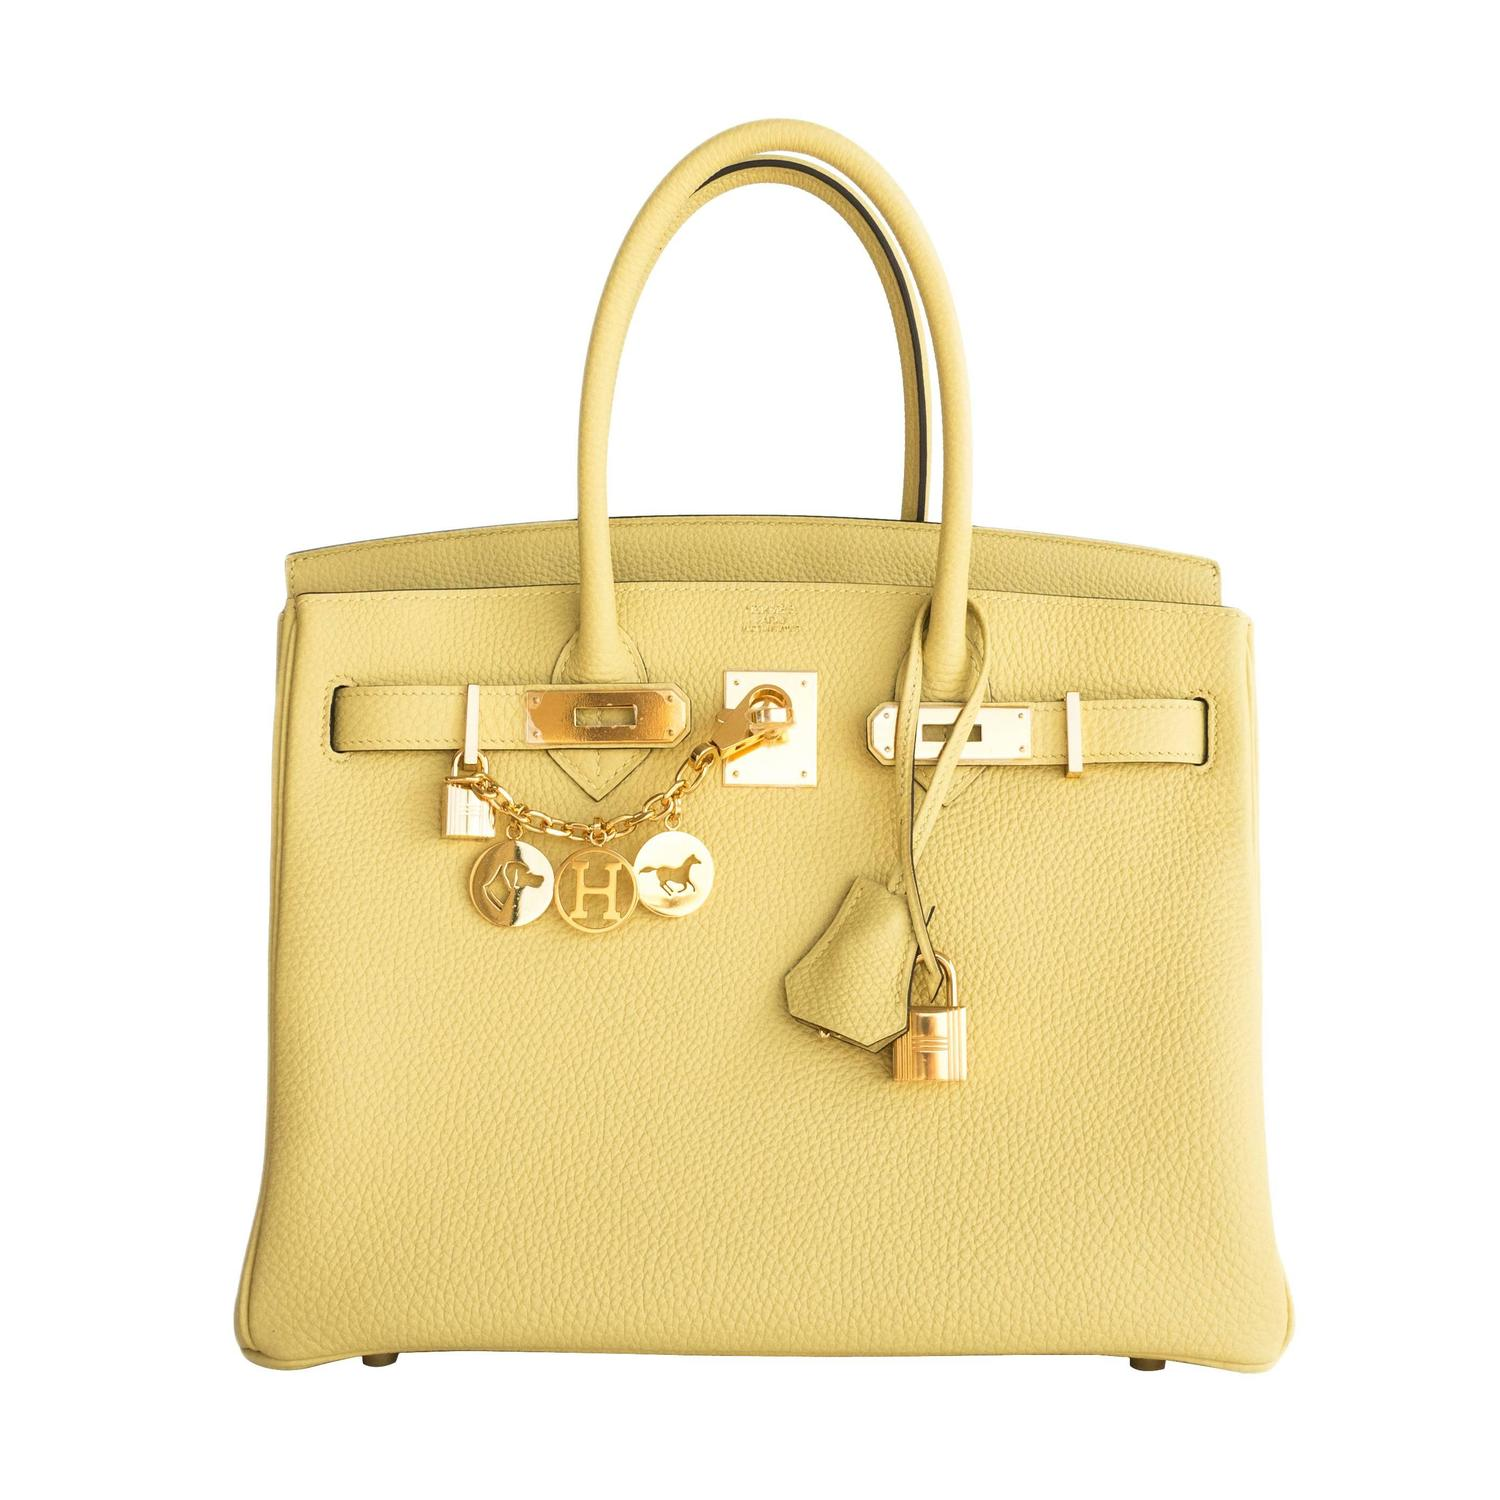 used hermes bag - Chicjoy Tote Bags - New York, NY 10003 - 1stdibs